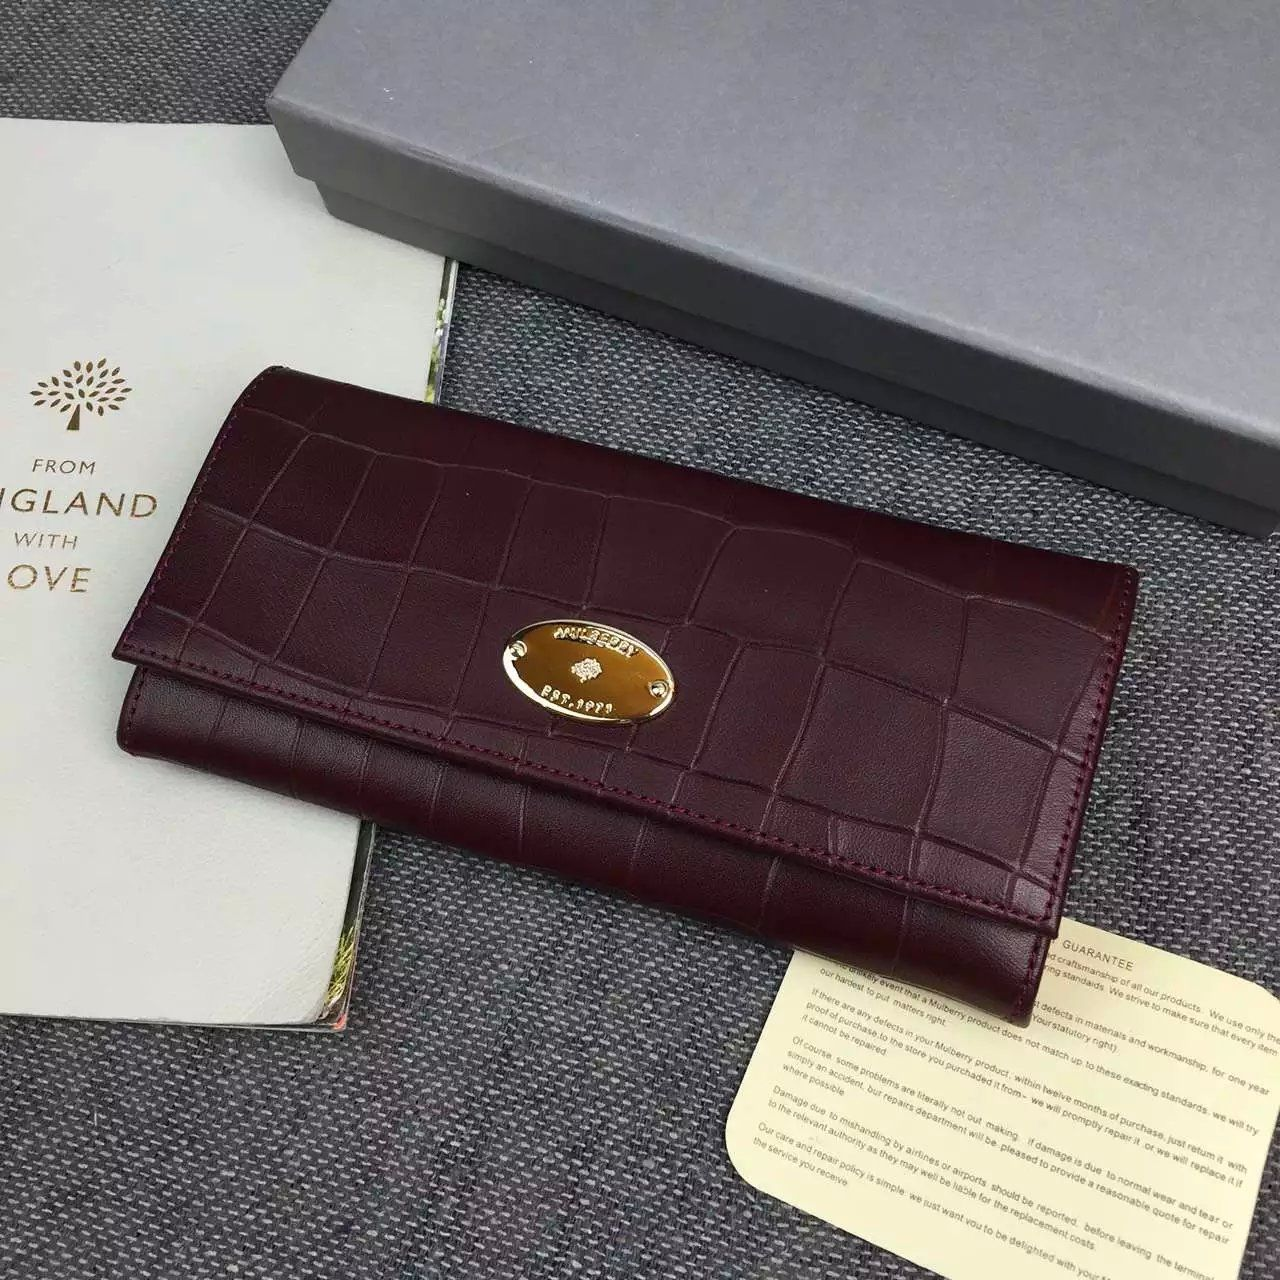 b225b575b4 Spring 2016 Mulberry Wallet Collection Outlet UK-Mulberry Continental  Wallet Oxblood Deep Embossed Croc Print